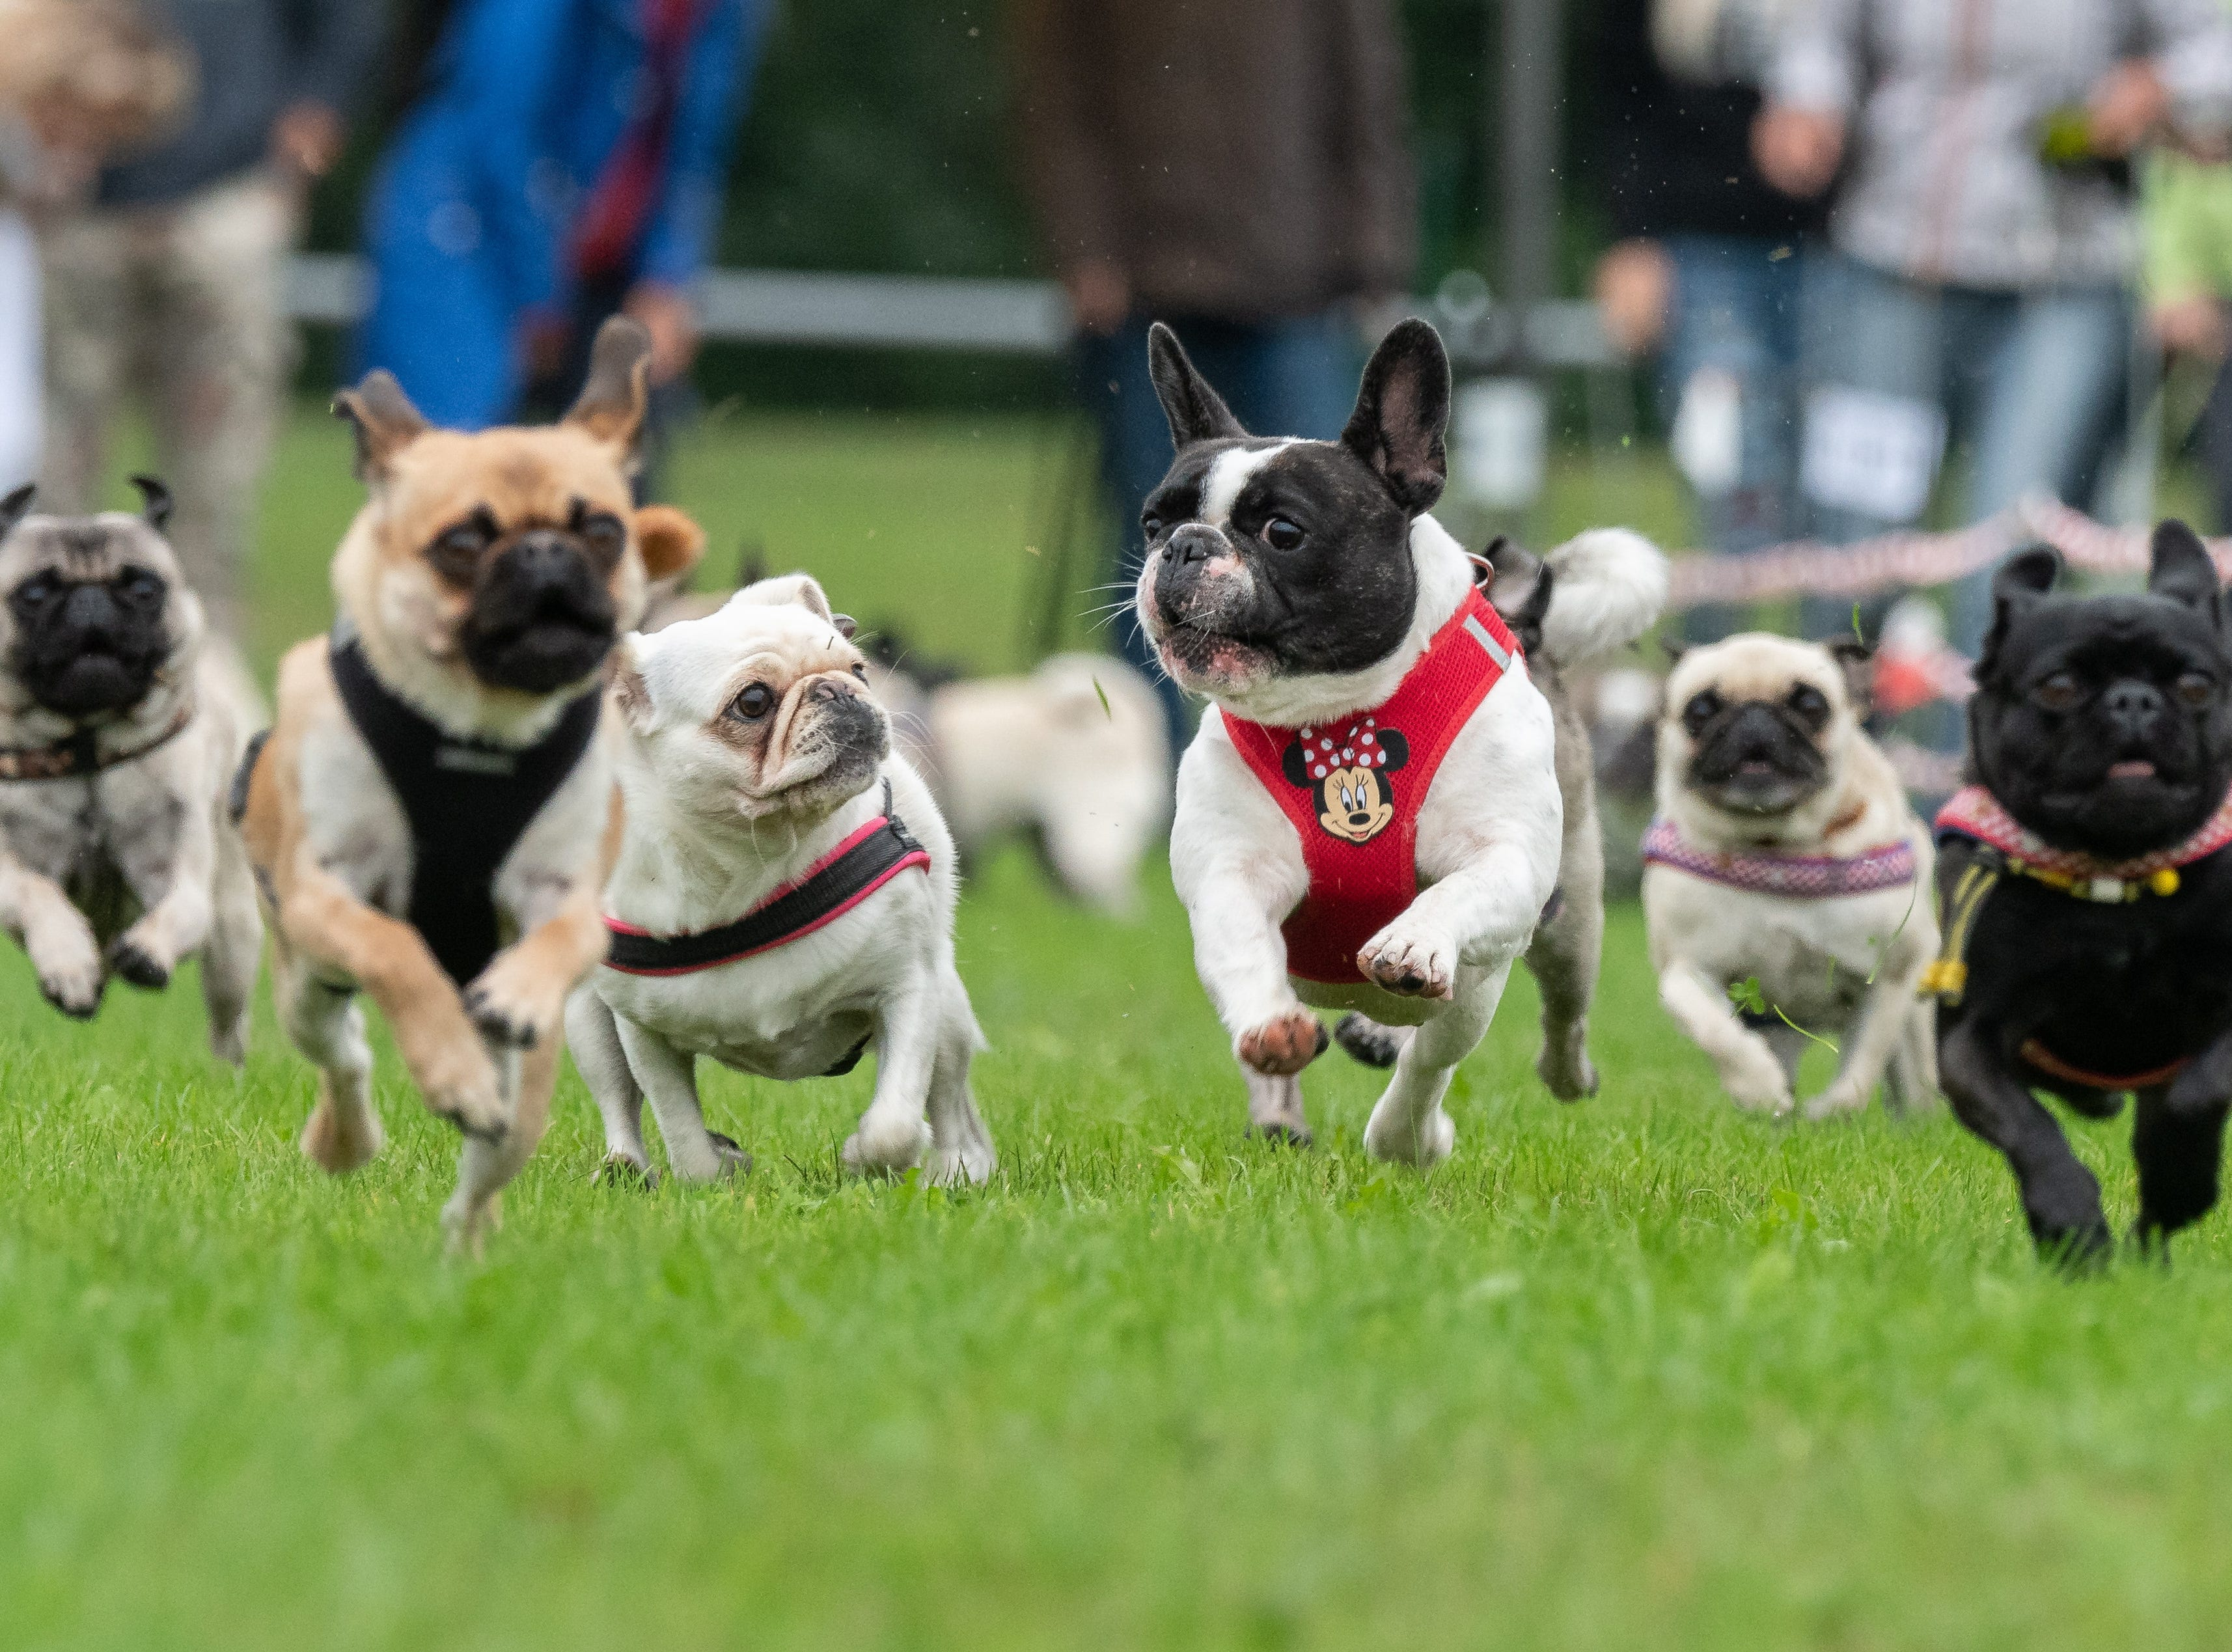 Sept. 2, 2018: Pugs and French bulldogs run on a grass field during the 8th Southern German pug and bulldog race in Wernau,  Germany.